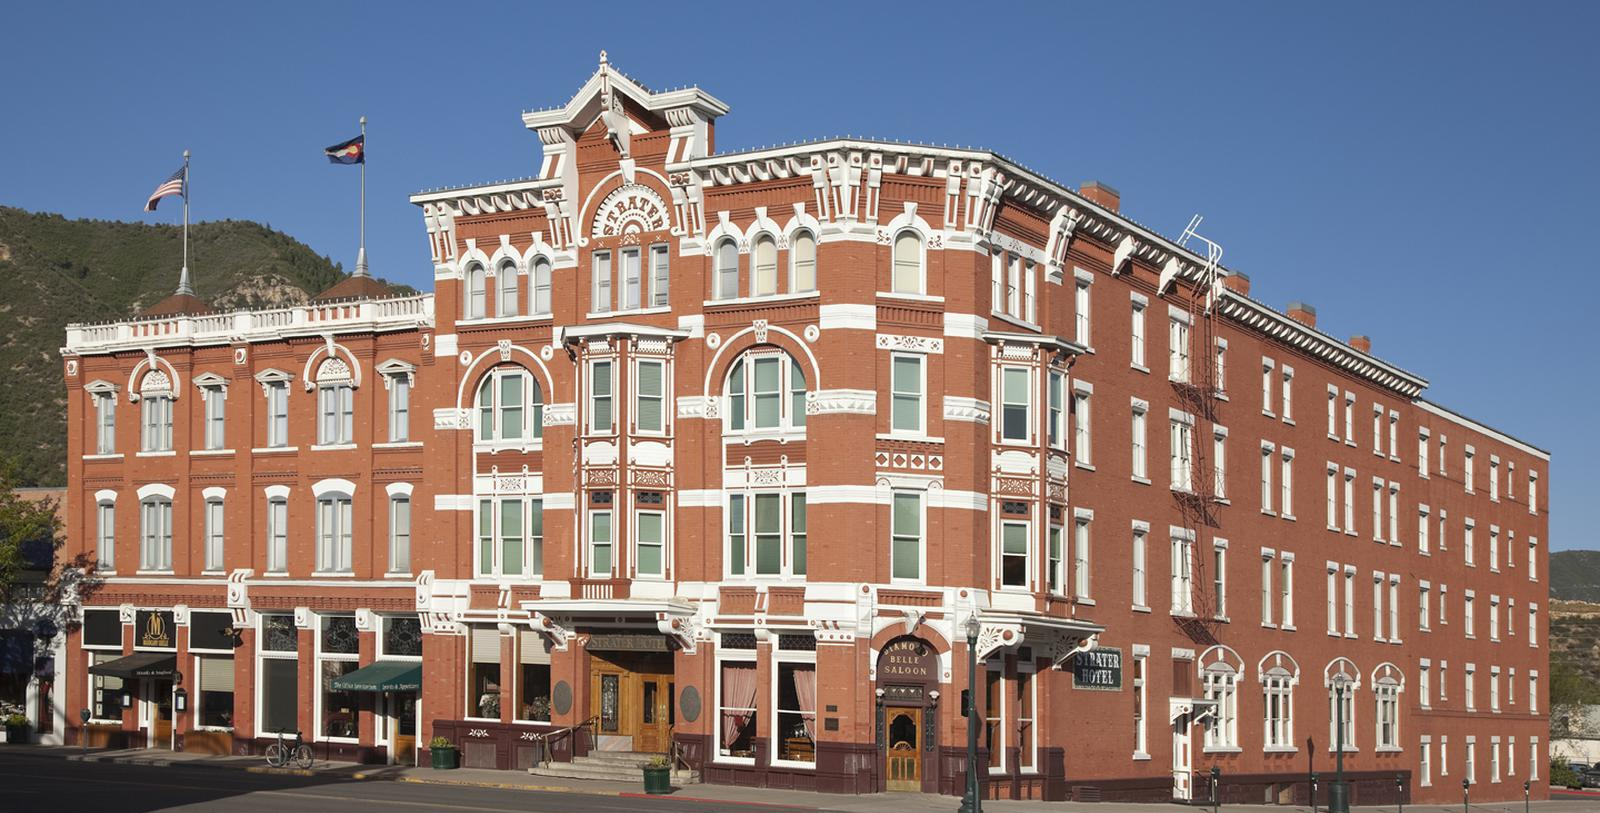 Image of Hotel Exterior The Strater Hotel, 1887, Member of Historic Hotels of America, in Durango, Colorado, Overview